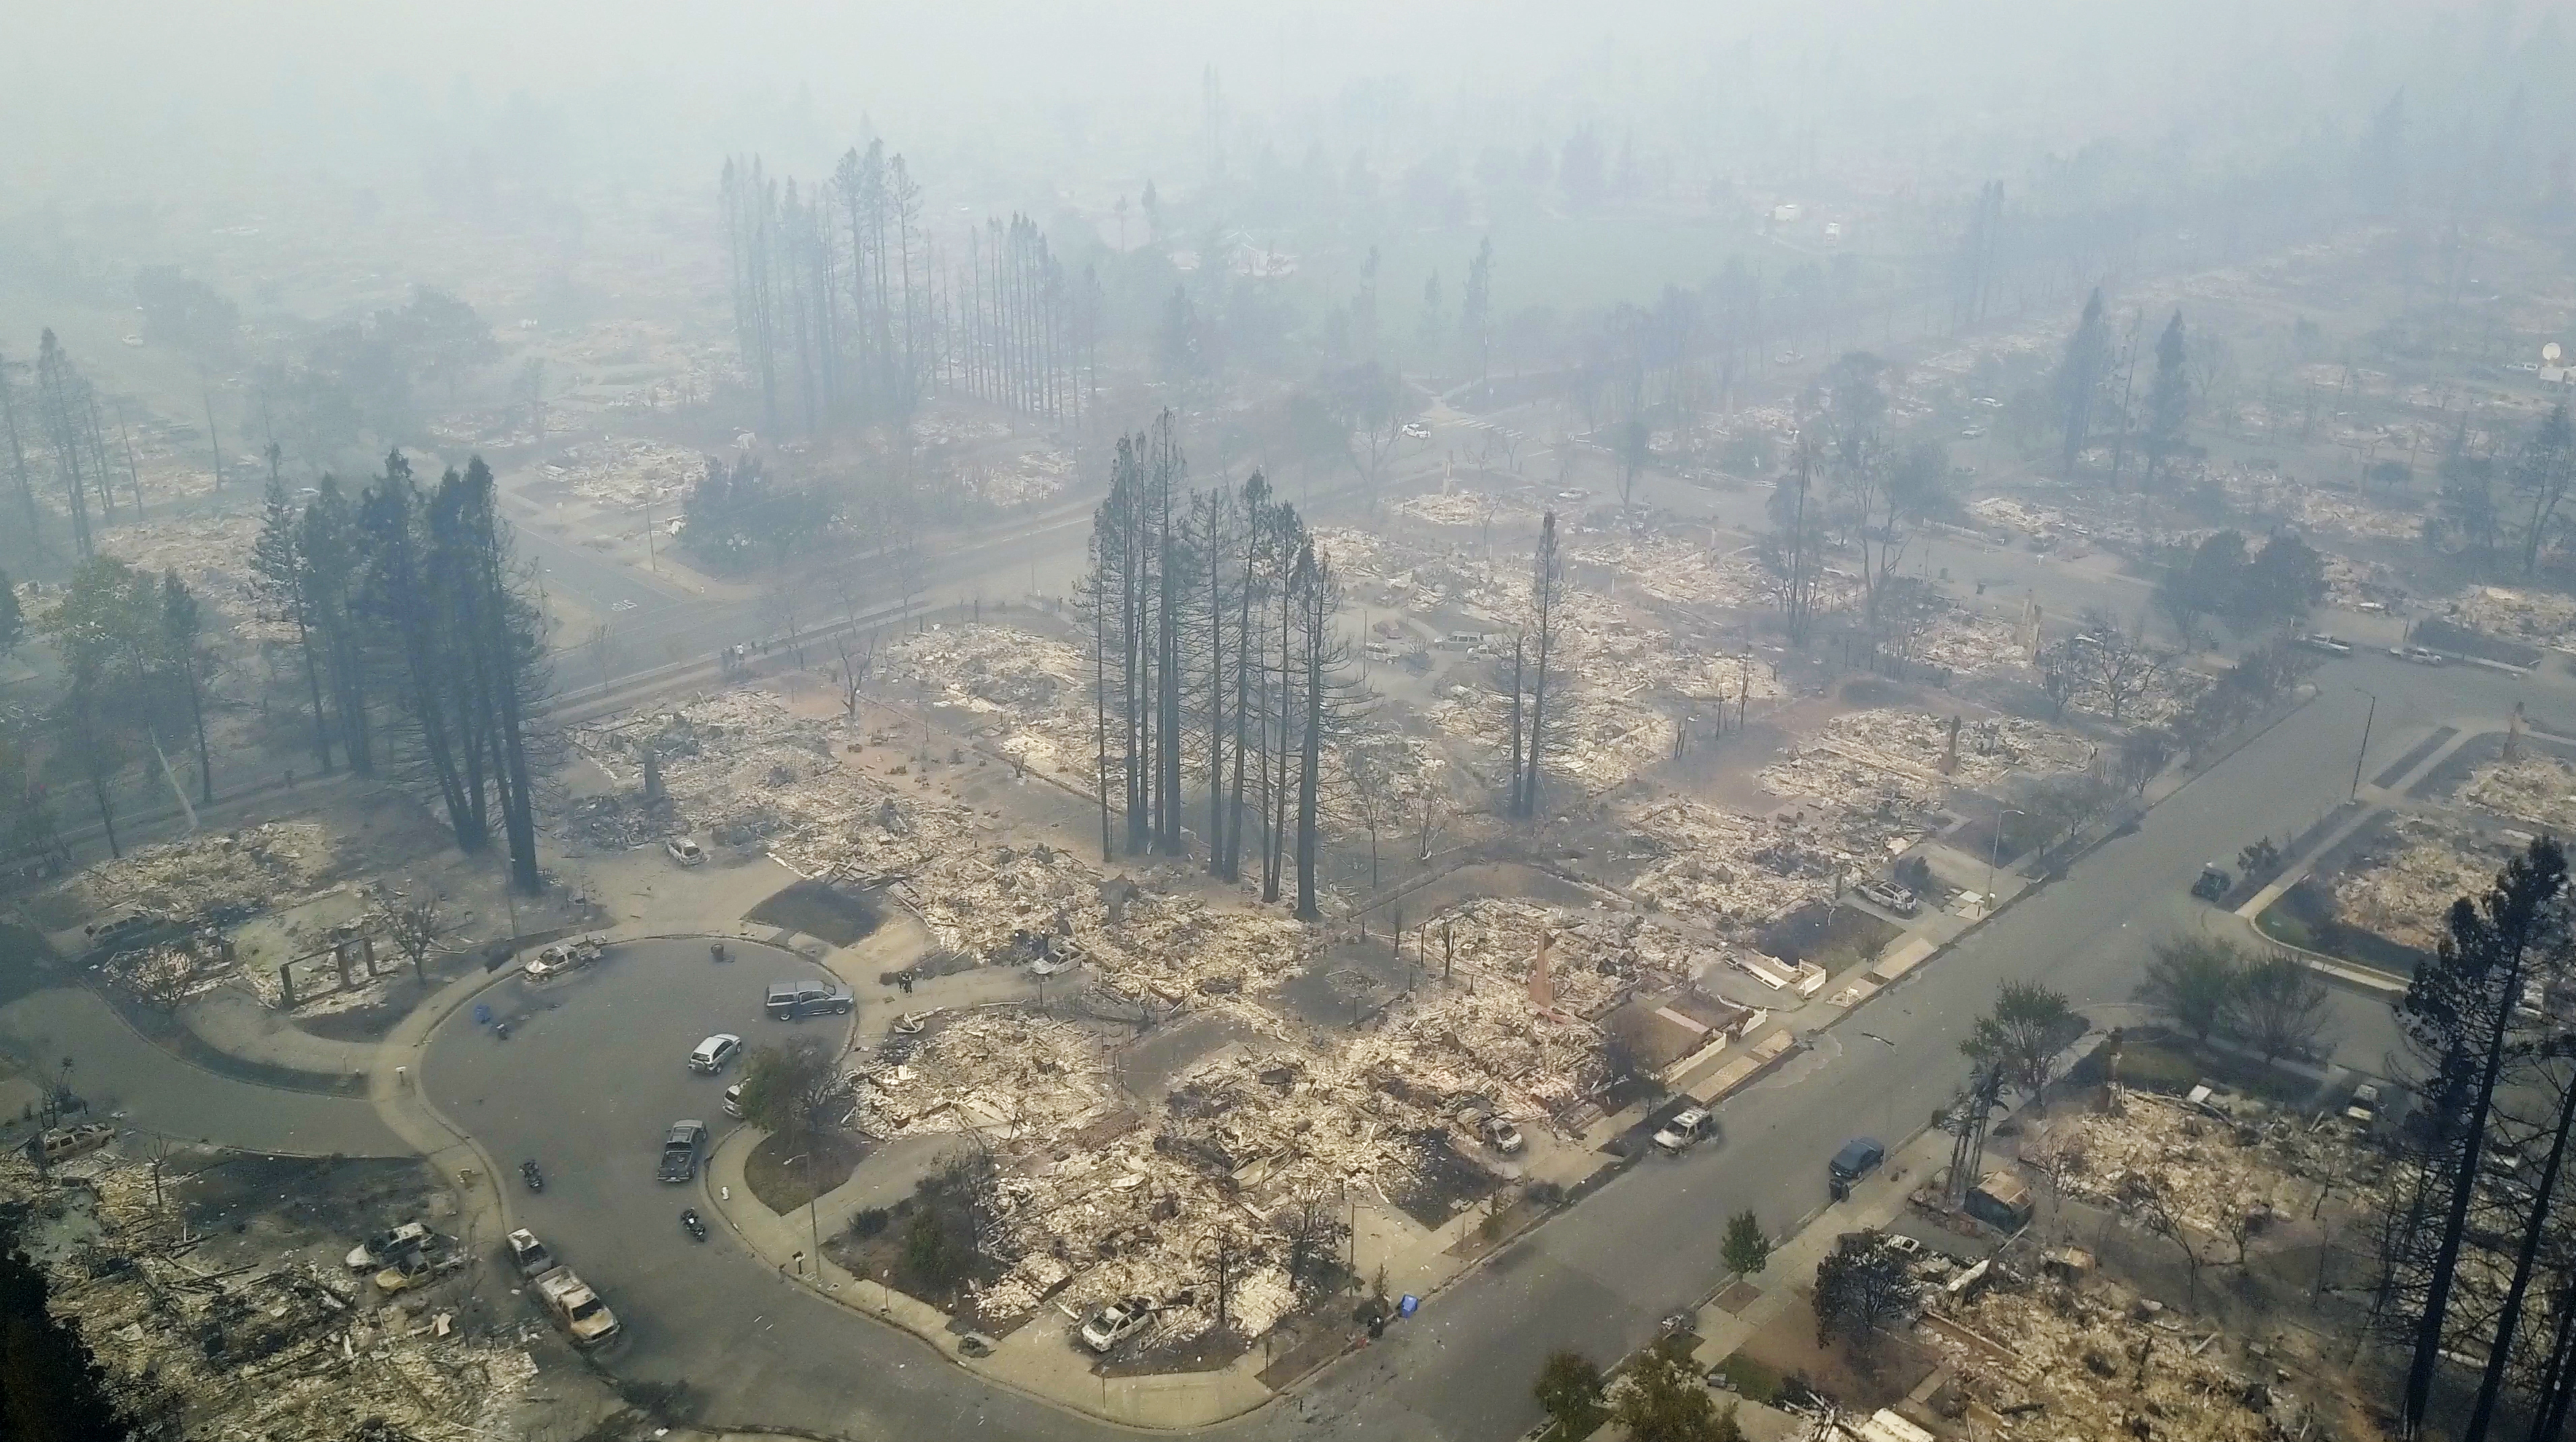 "<div class=""meta image-caption""><div class=""origin-logo origin-image none""><span>none</span></div><span class=""caption-text"">This aerial image shows a neighborhood that was destroyed by a wildfire in Santa Rosa, Calif., Tuesday, Oct. 10, 2017. (Nick Giblin/DroneBase via AP)</span></div>"